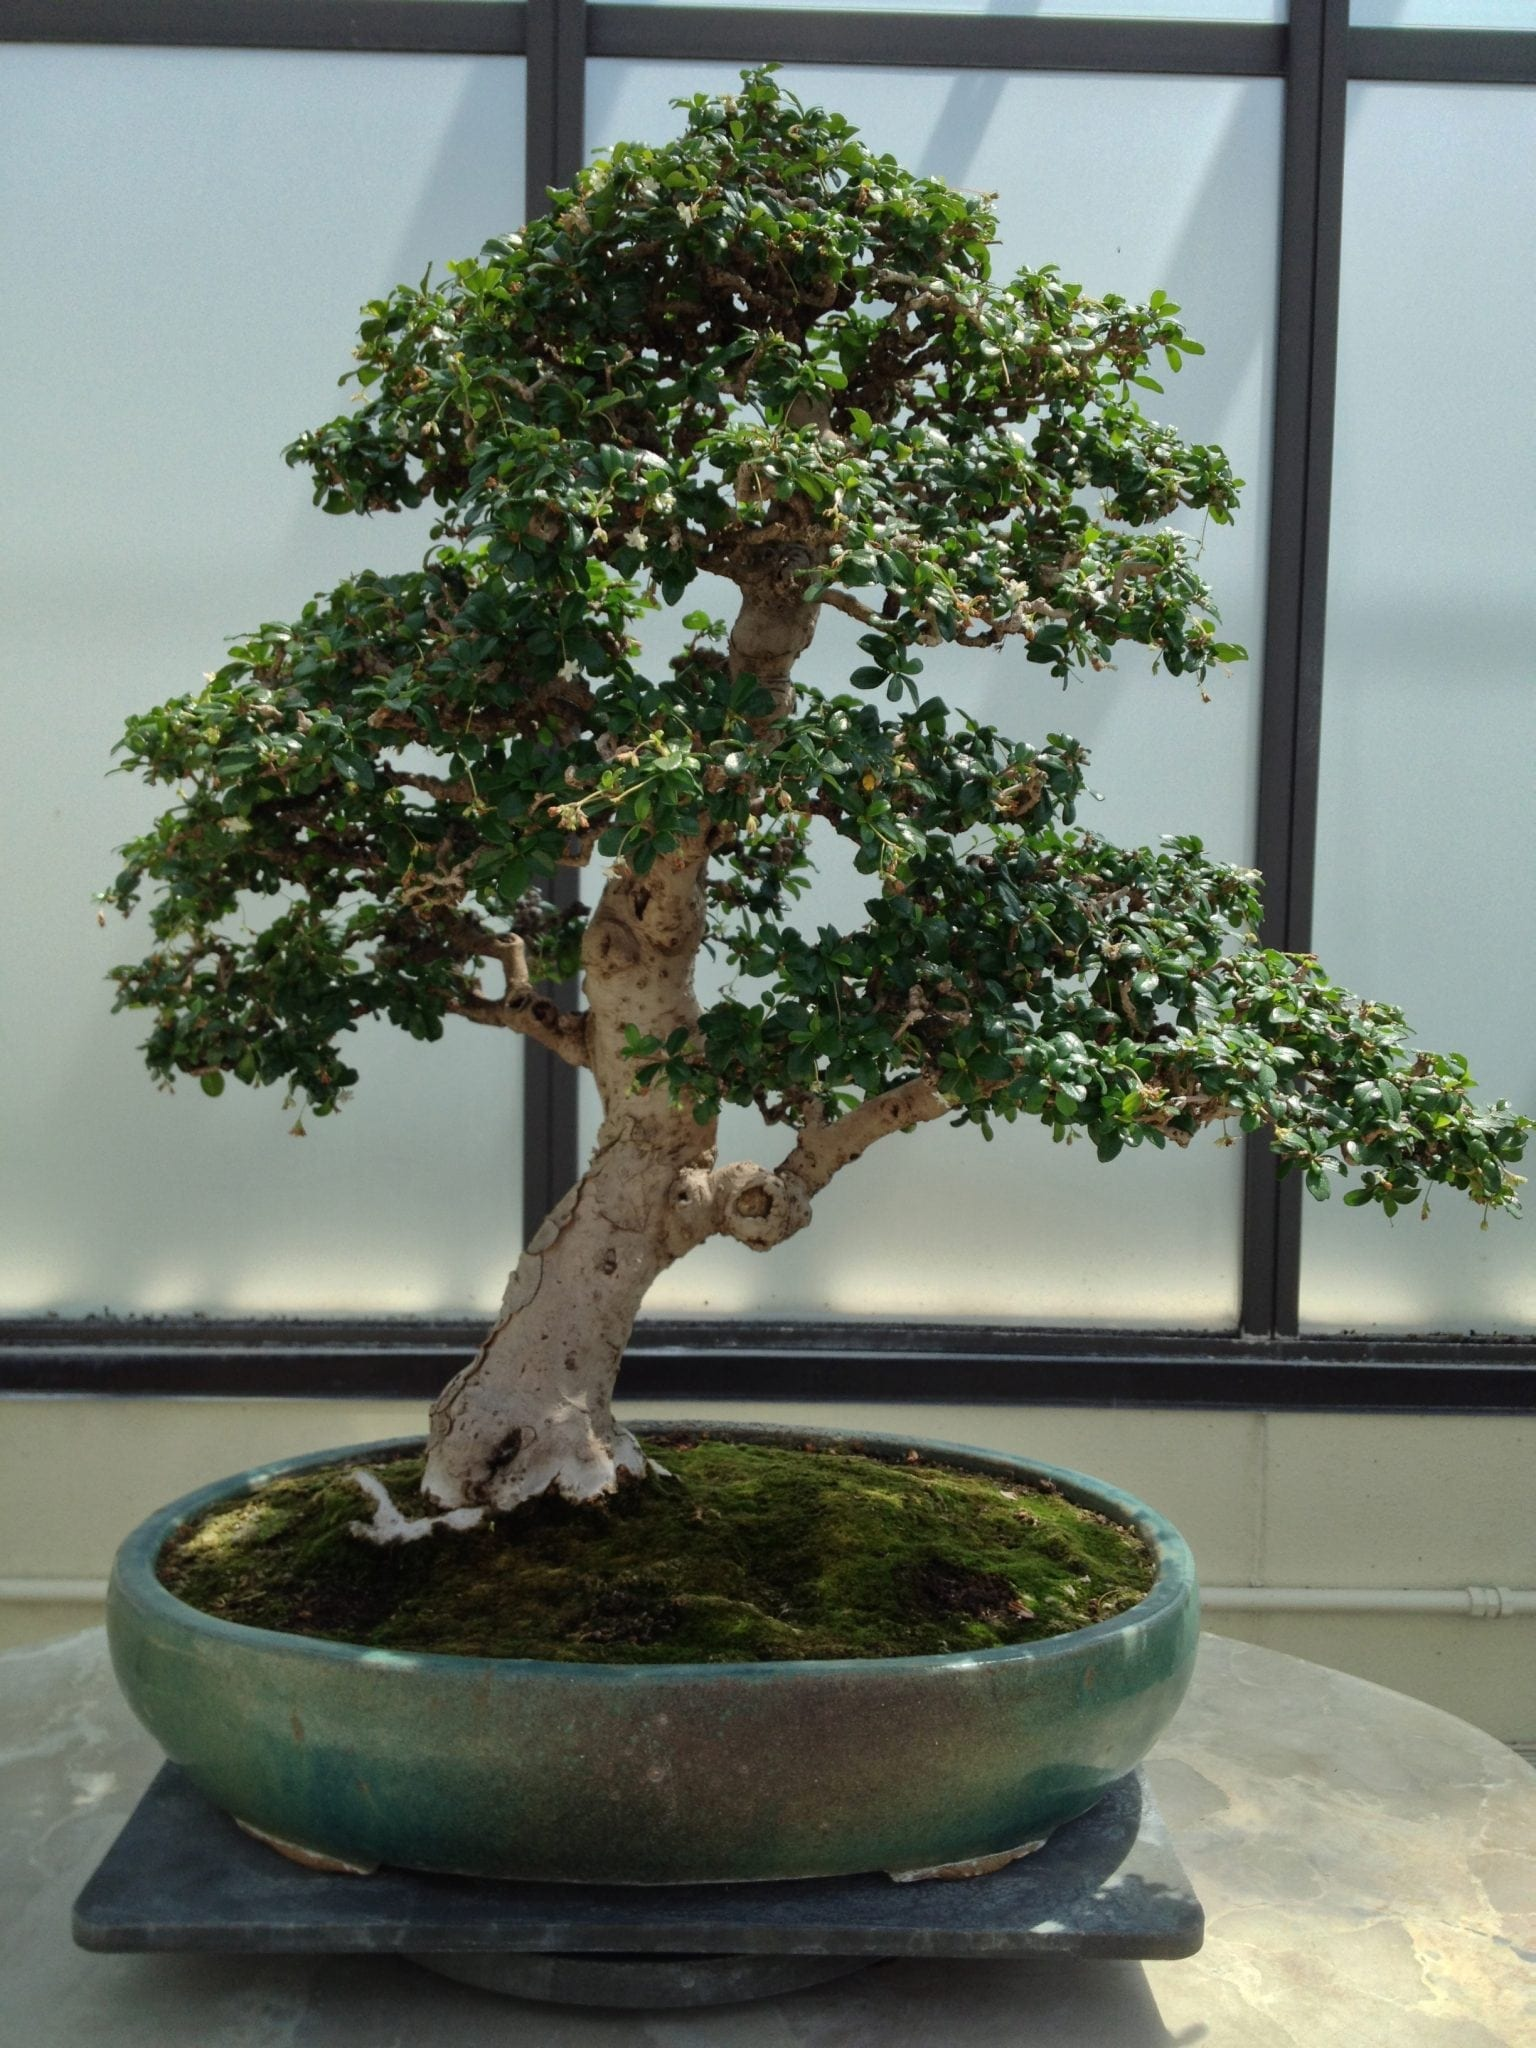 Fukien Tea Bonsai Tree Care Guide Carmona Retusa Or Ehretia Microphylla Bonsai Tree Gardener